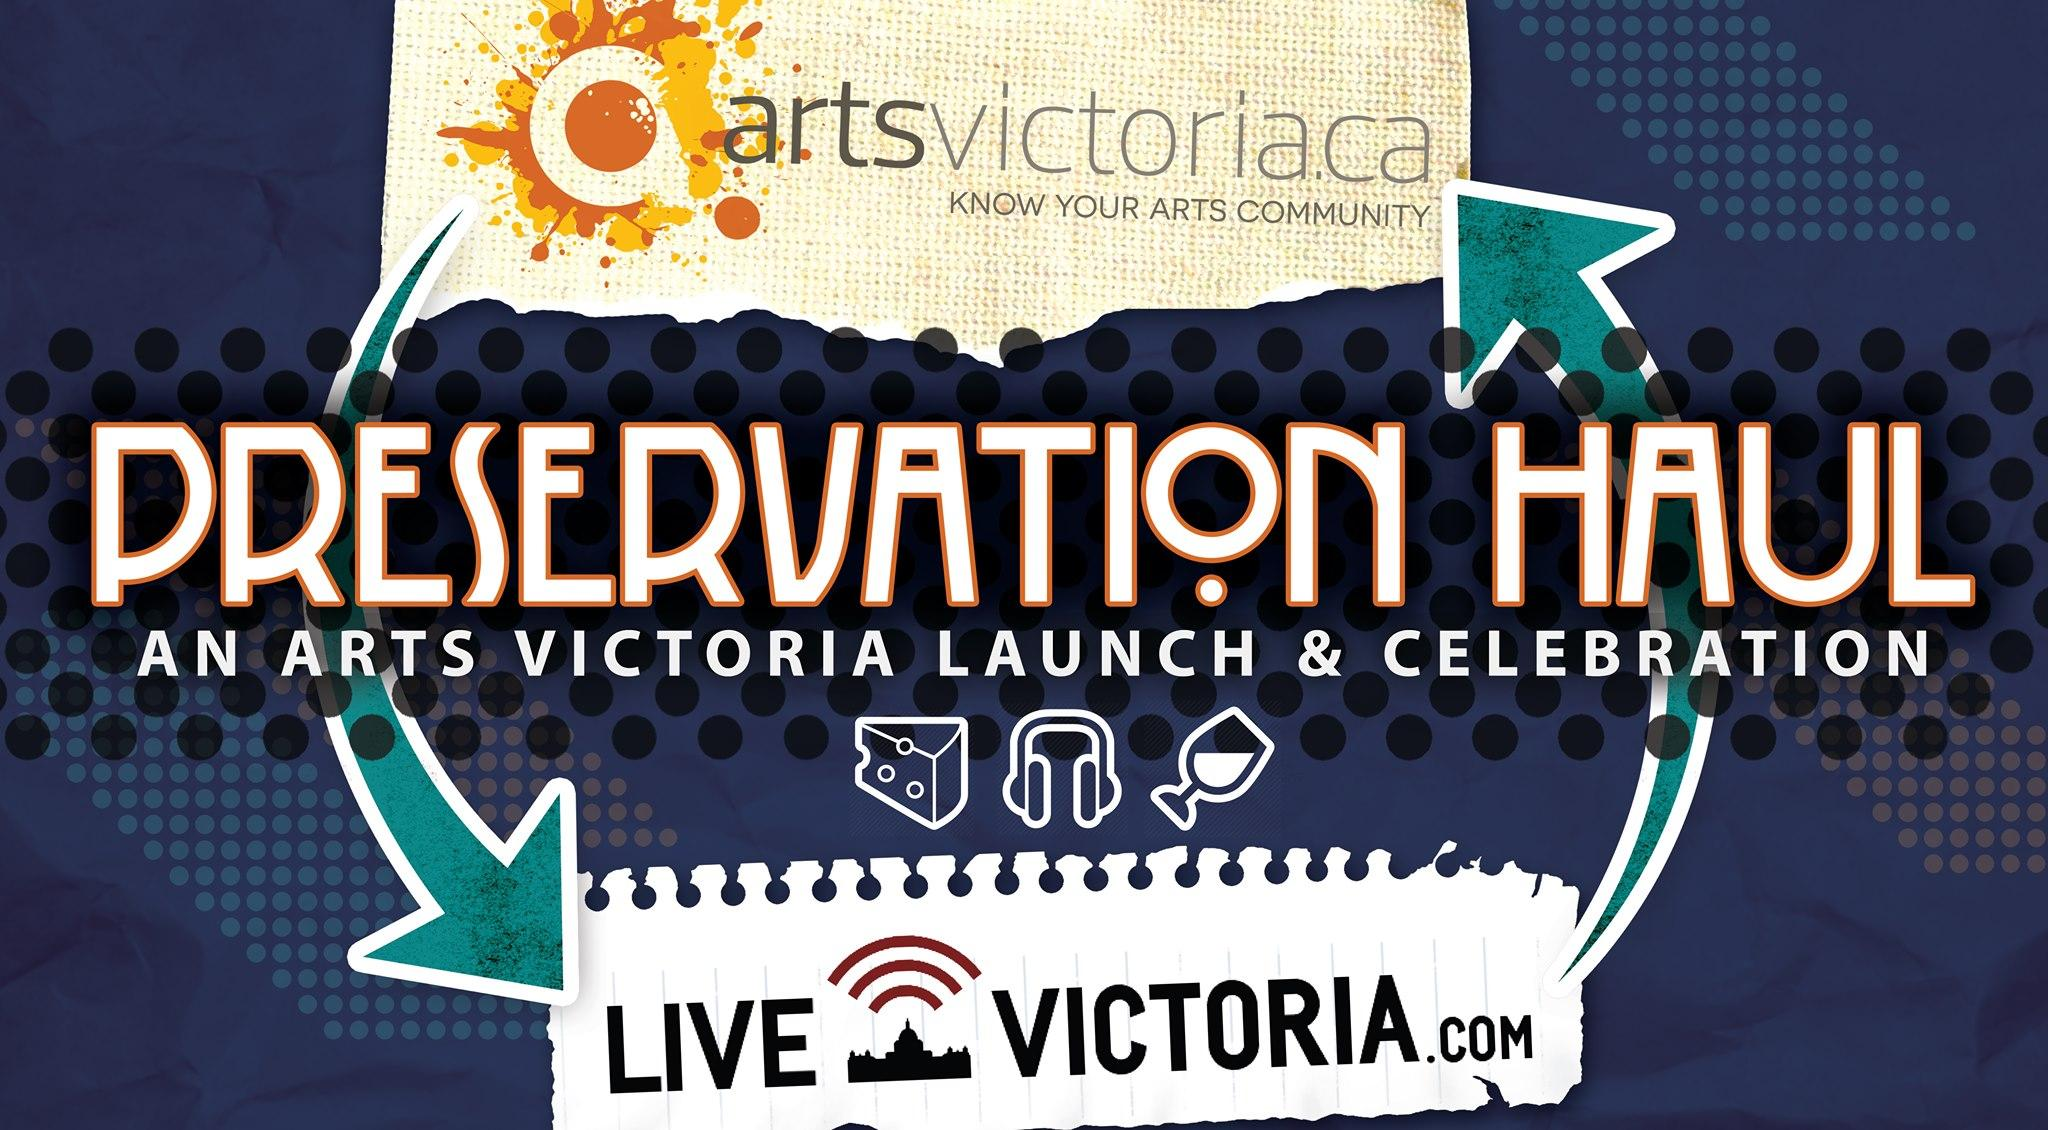 Preservation Haul: An Arts Victoria Launch & Celebration